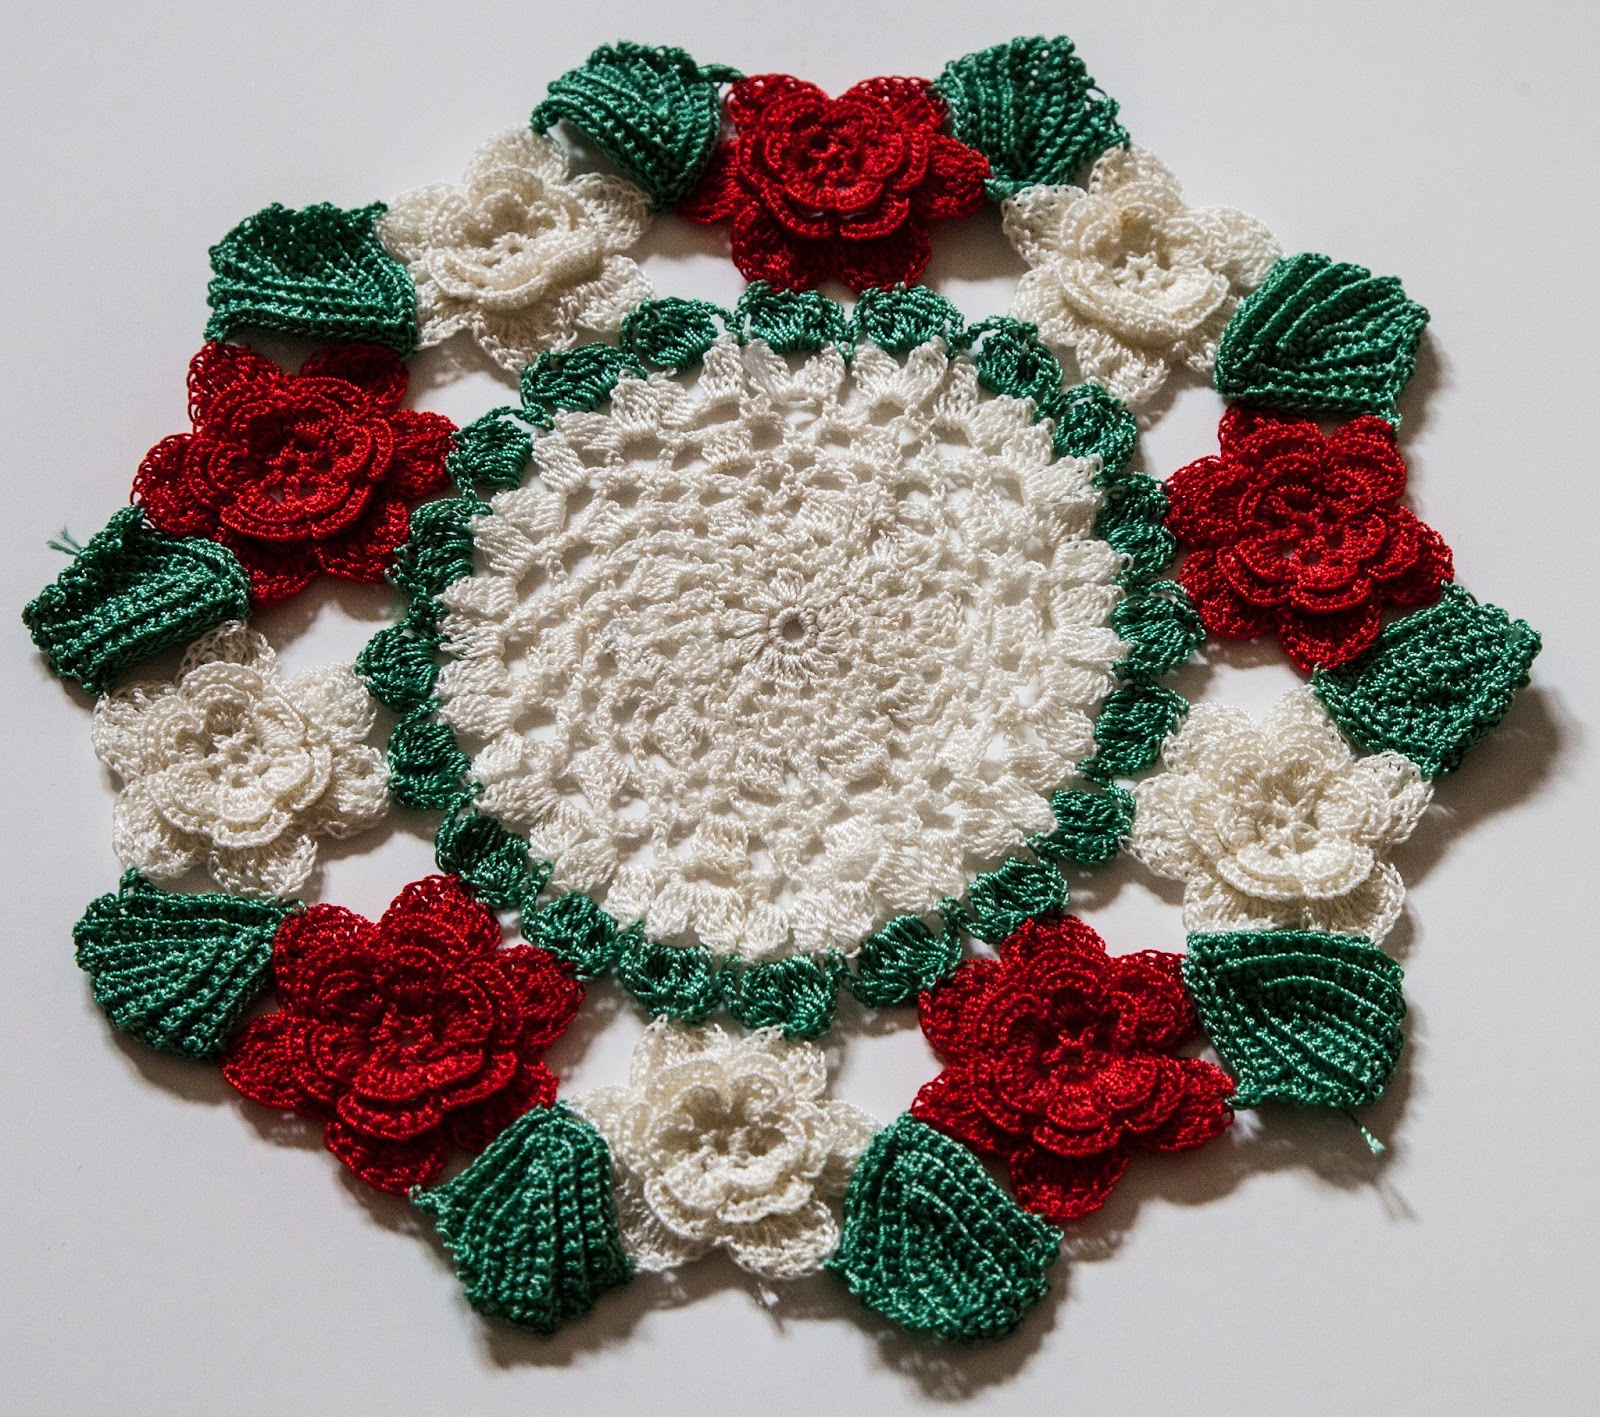 Crochet Work : TheAncestorFiles: Crochet and Needle Work by Margaret Godfrey Jarvis ...